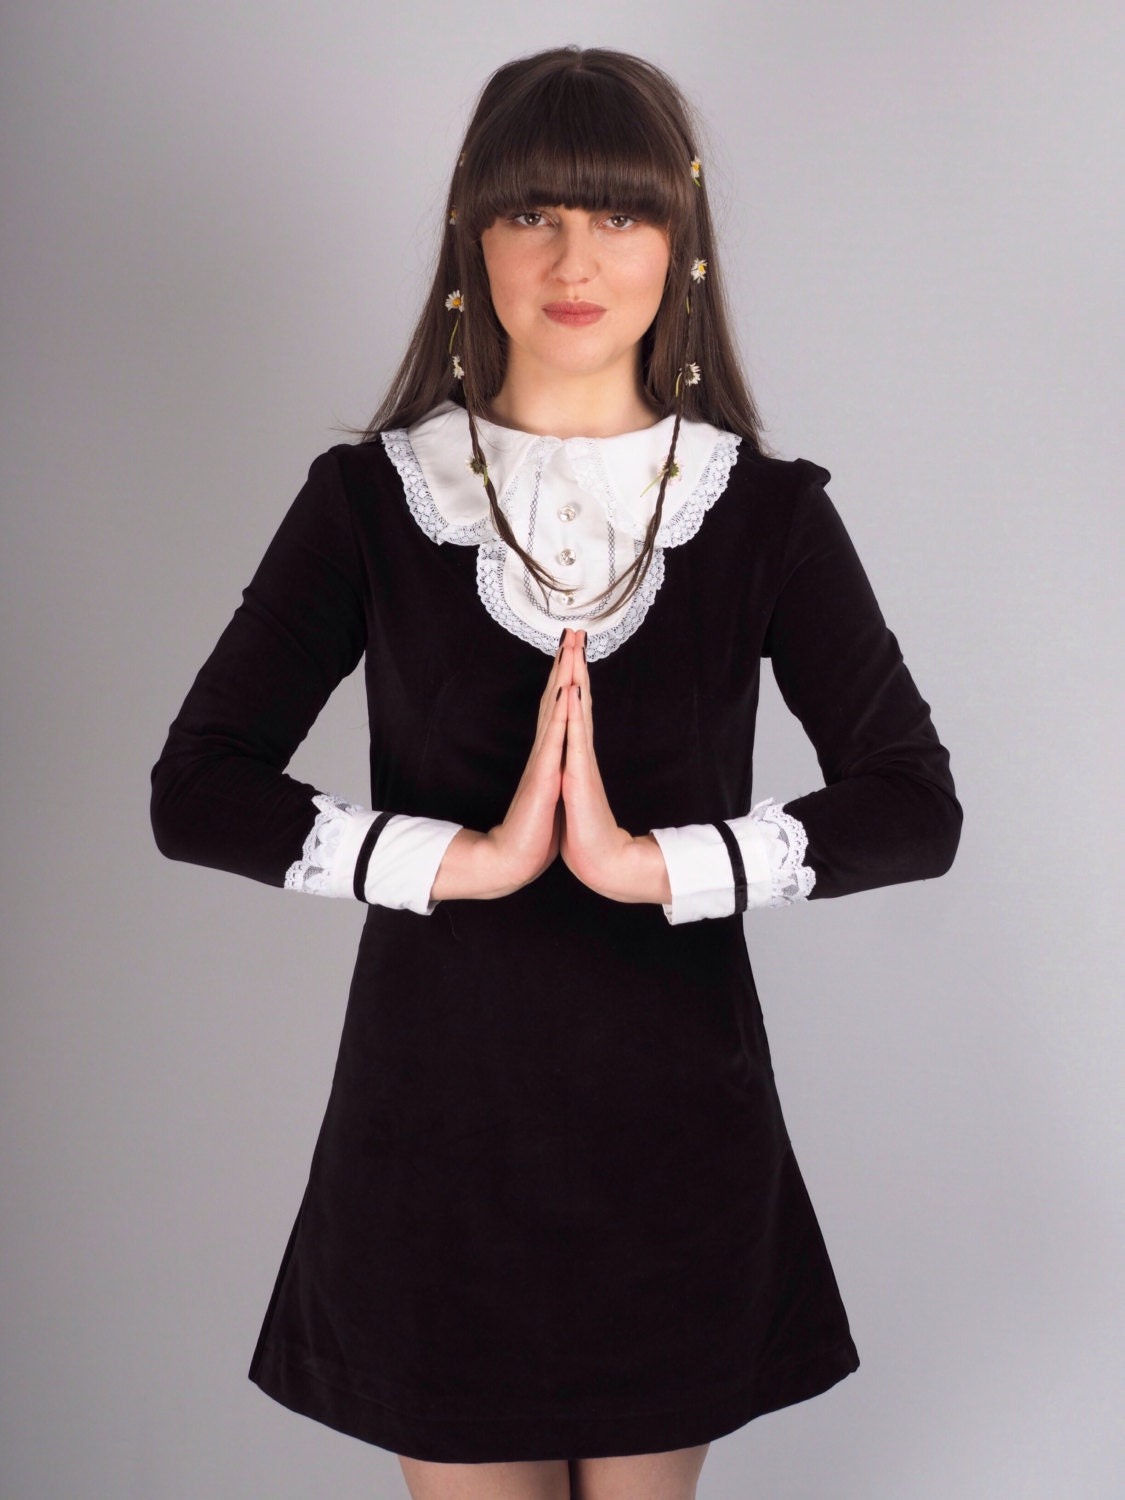 Black velvet mod dress with white collar by violethouseclothing